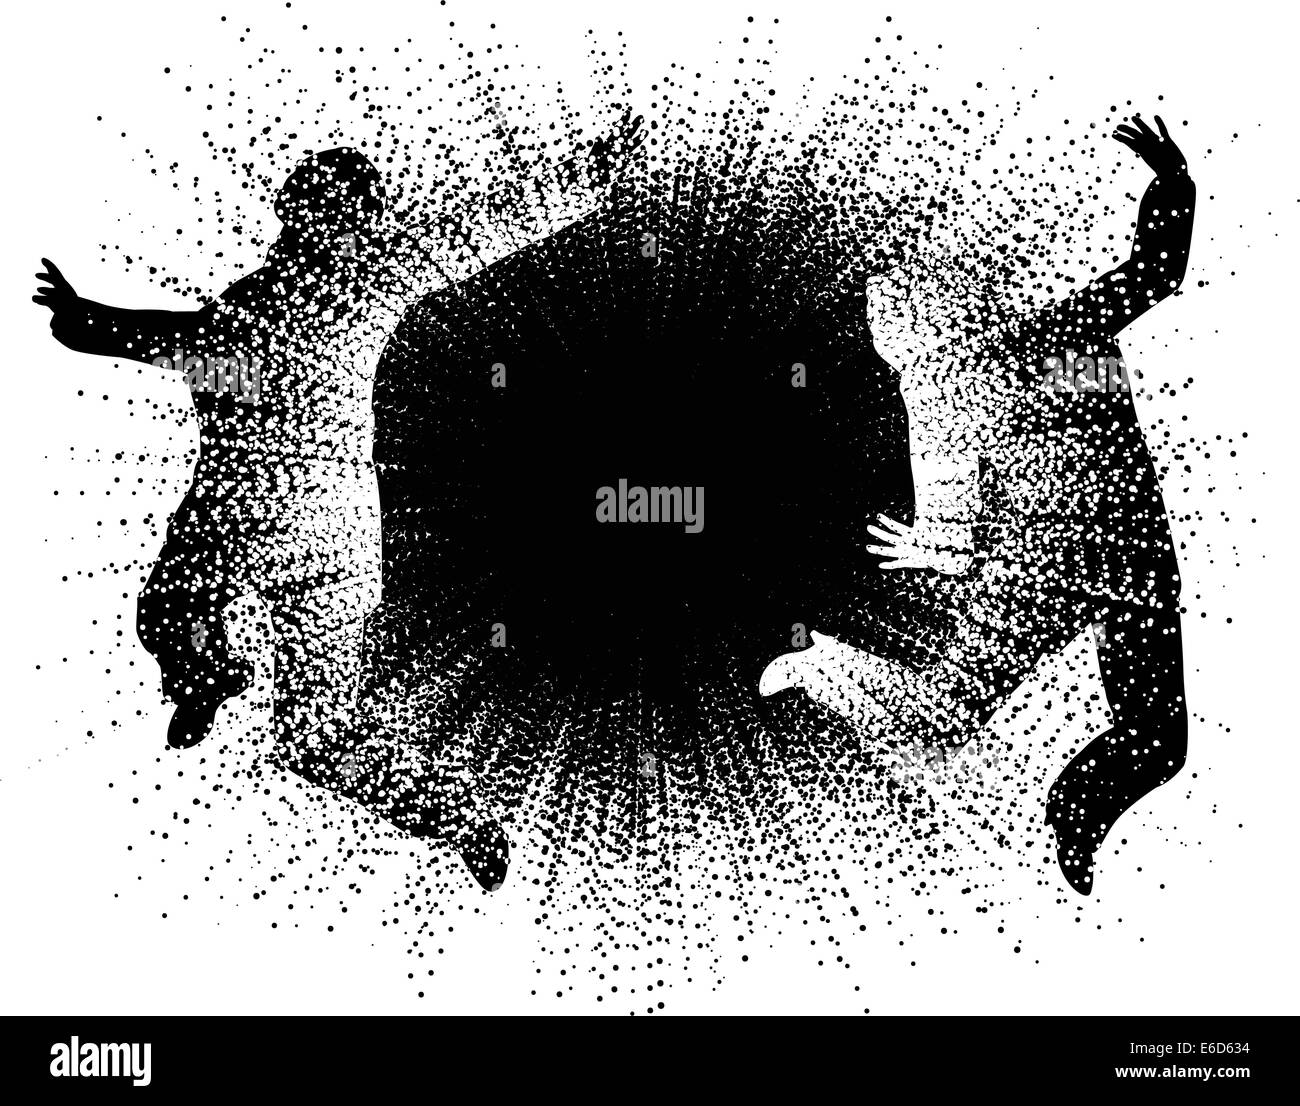 Editable vector illustration of two people caught in an explosion - Stock Vector